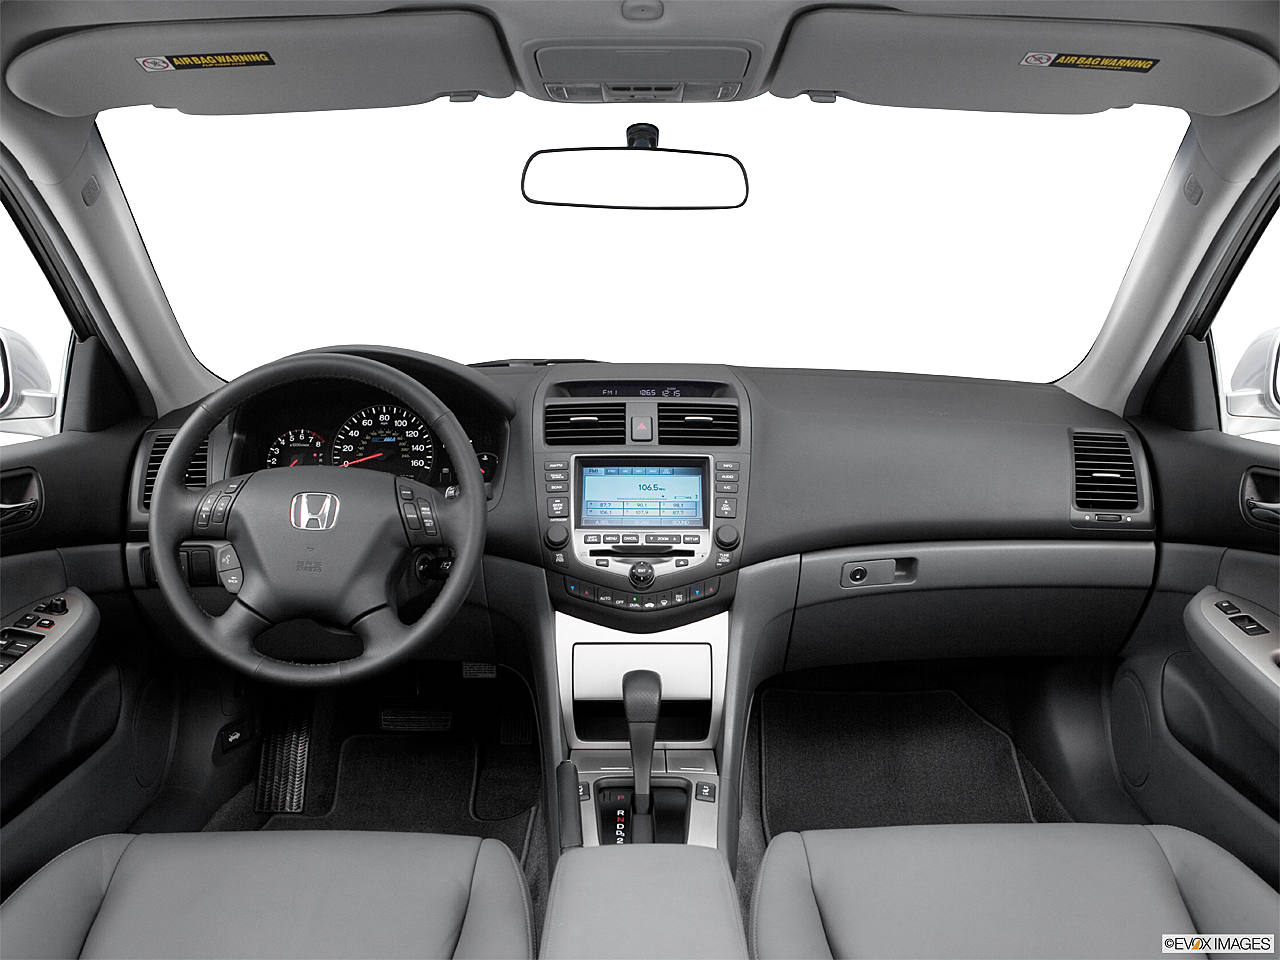 2006 Honda Accord Hybrid Centered Wide Dash Shot